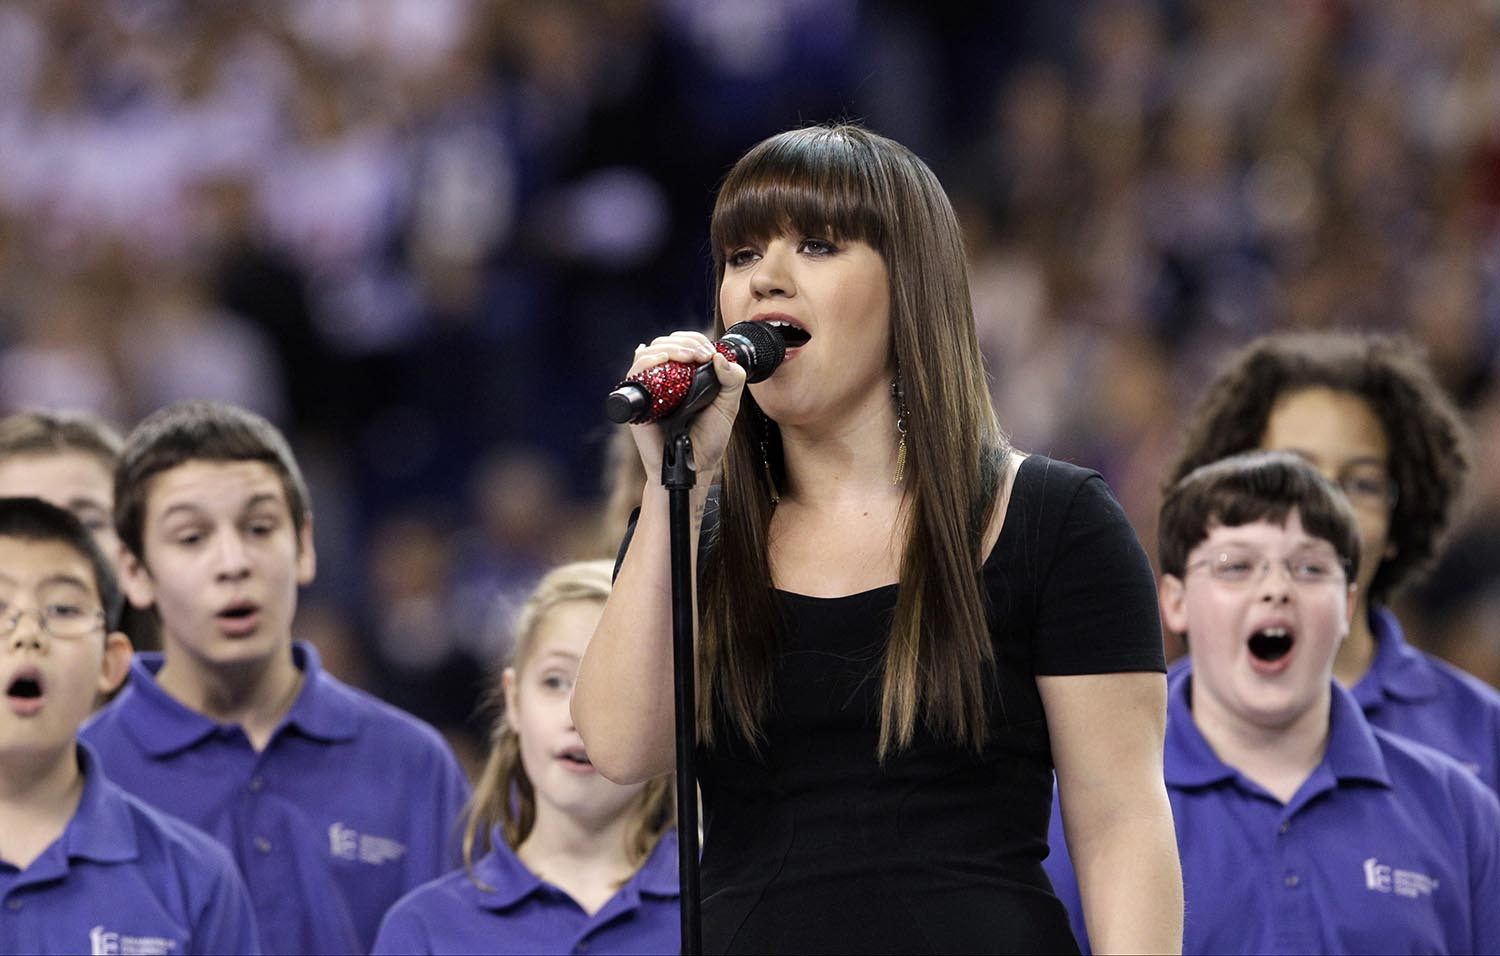 <div class='meta'><div class='origin-logo' data-origin='AP'></div><span class='caption-text' data-credit='AP Photo/David J. Phillip'>2012: Kelly Clarkson sings the national anthem before the NFL Super Bowl XLVI football game between the New York Giants and the New England Patriots on Feb. 5, 2012.</span></div>